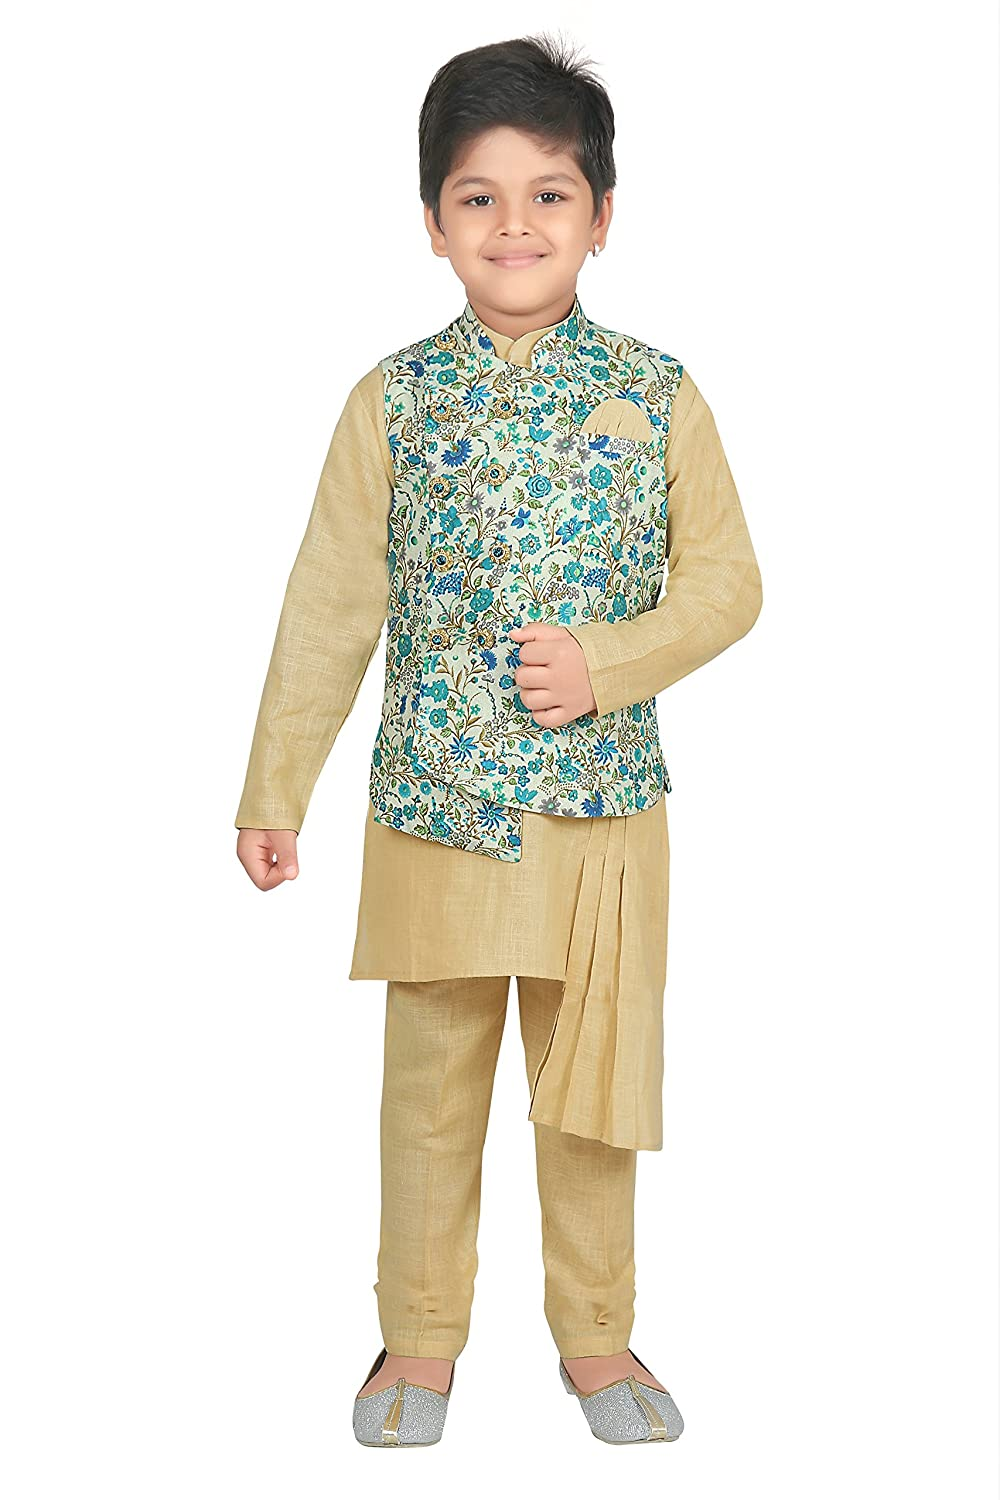 034ad8448 From the house of Arangers this exclusive Premium Indian ethnic Limited  Edition Designer Collection for boys